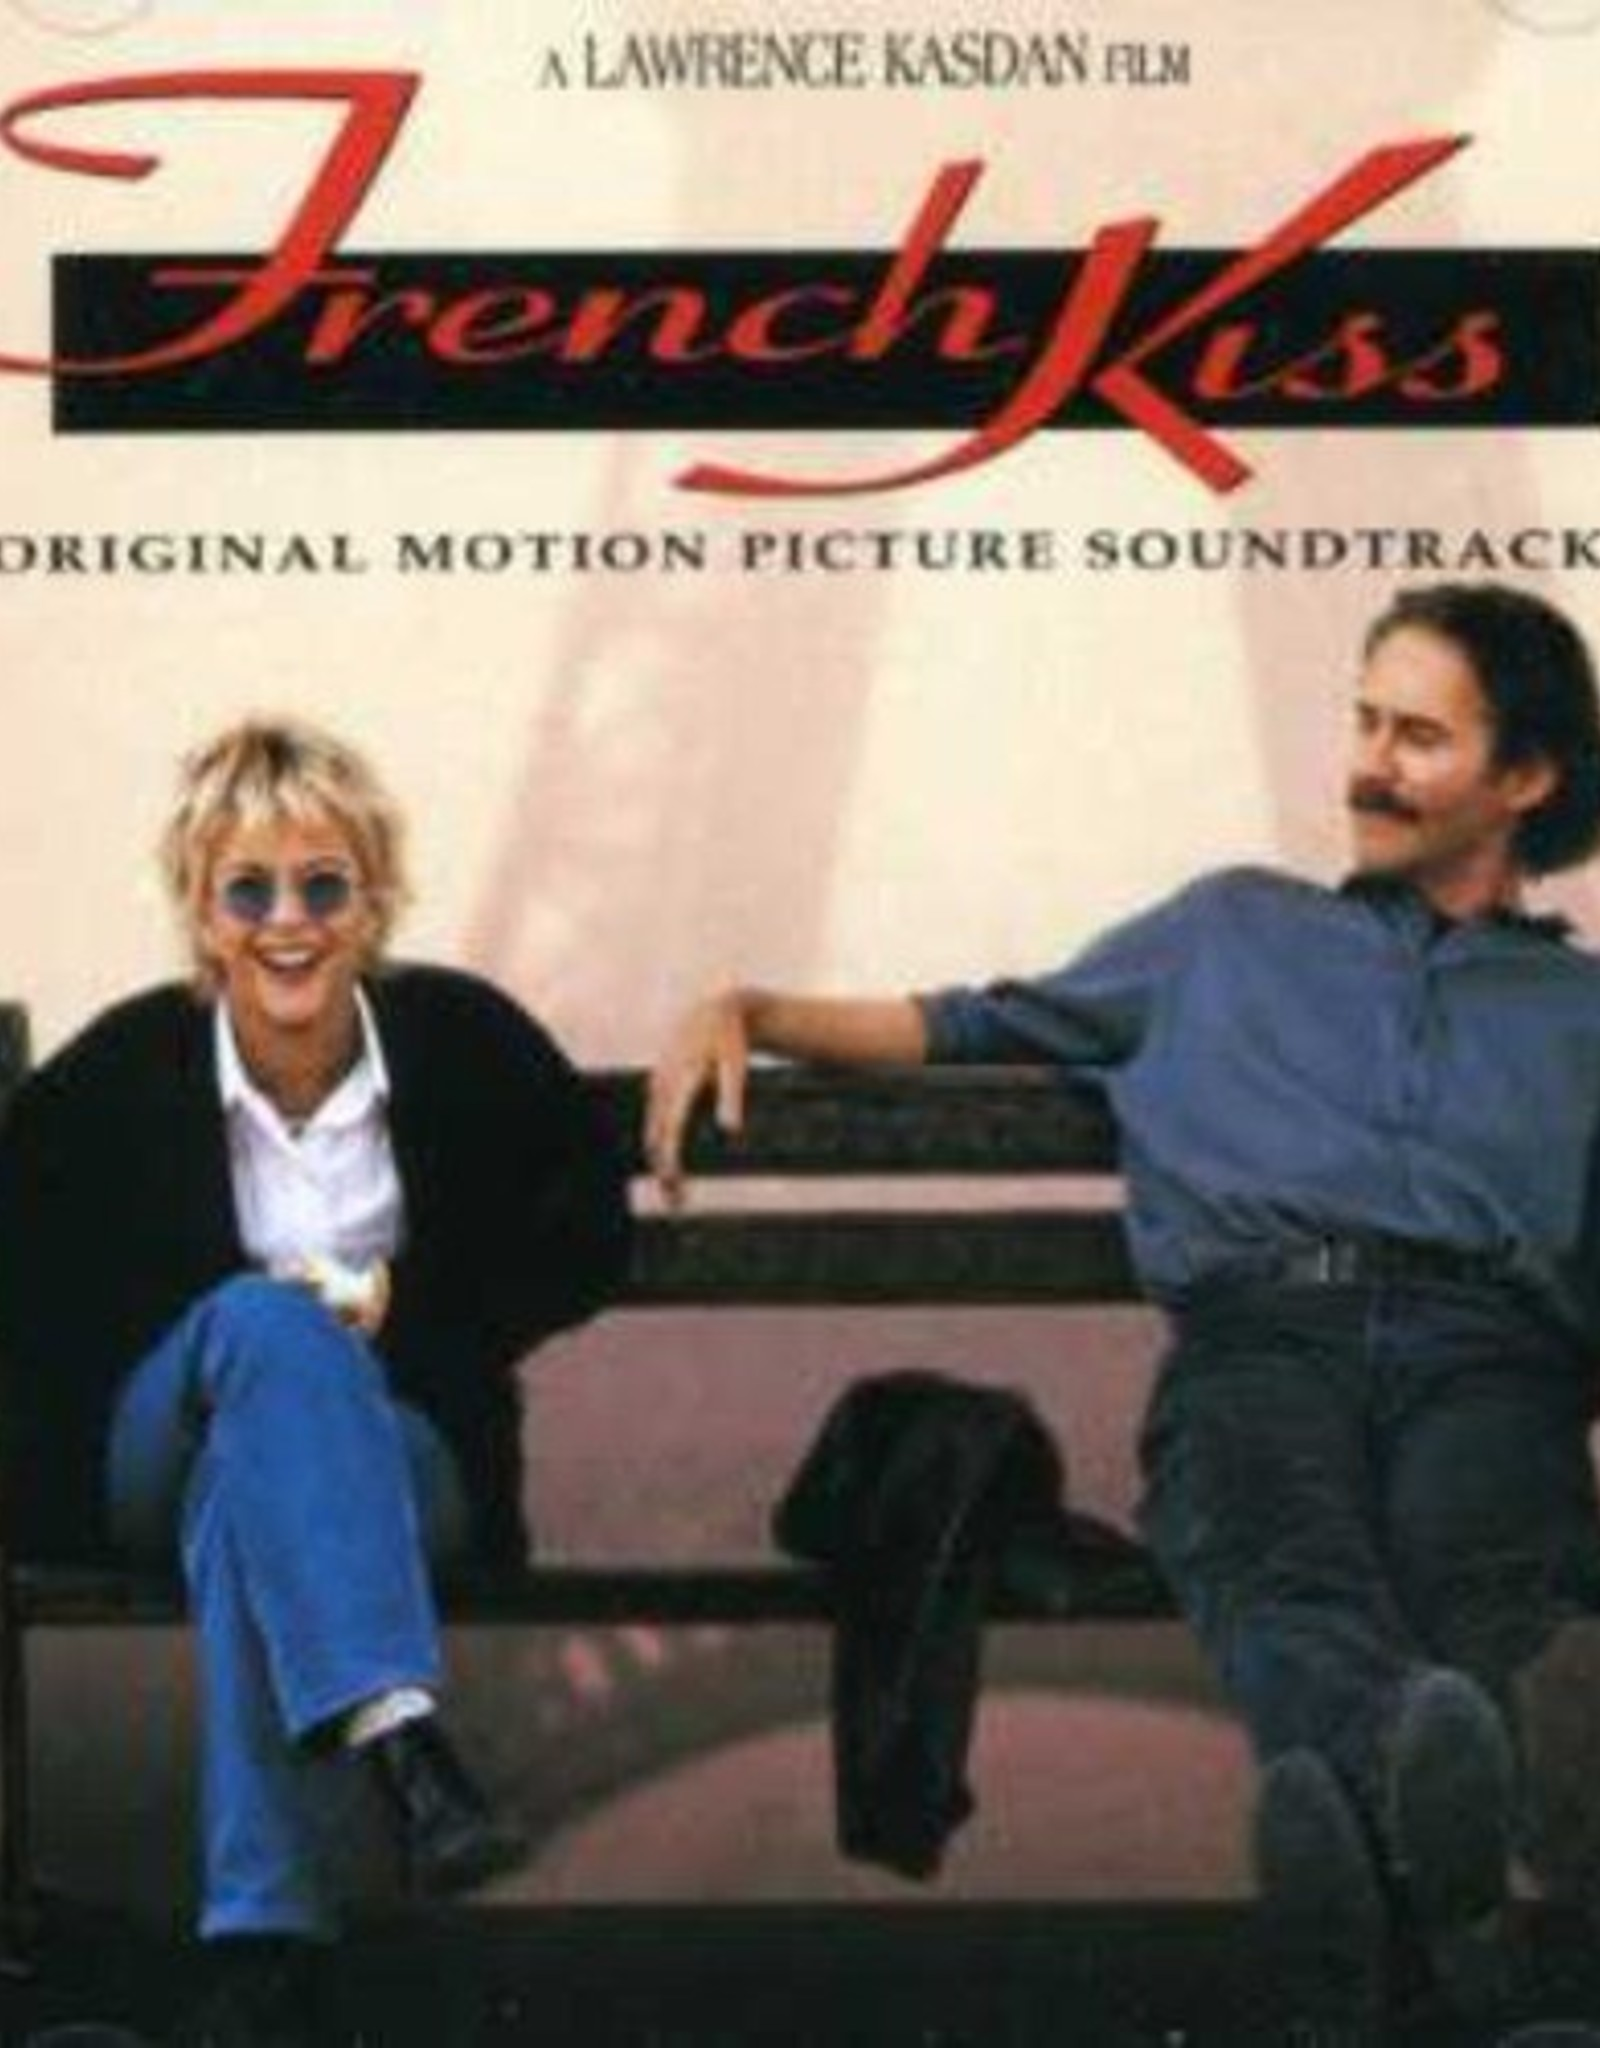 French Kiss - S/t